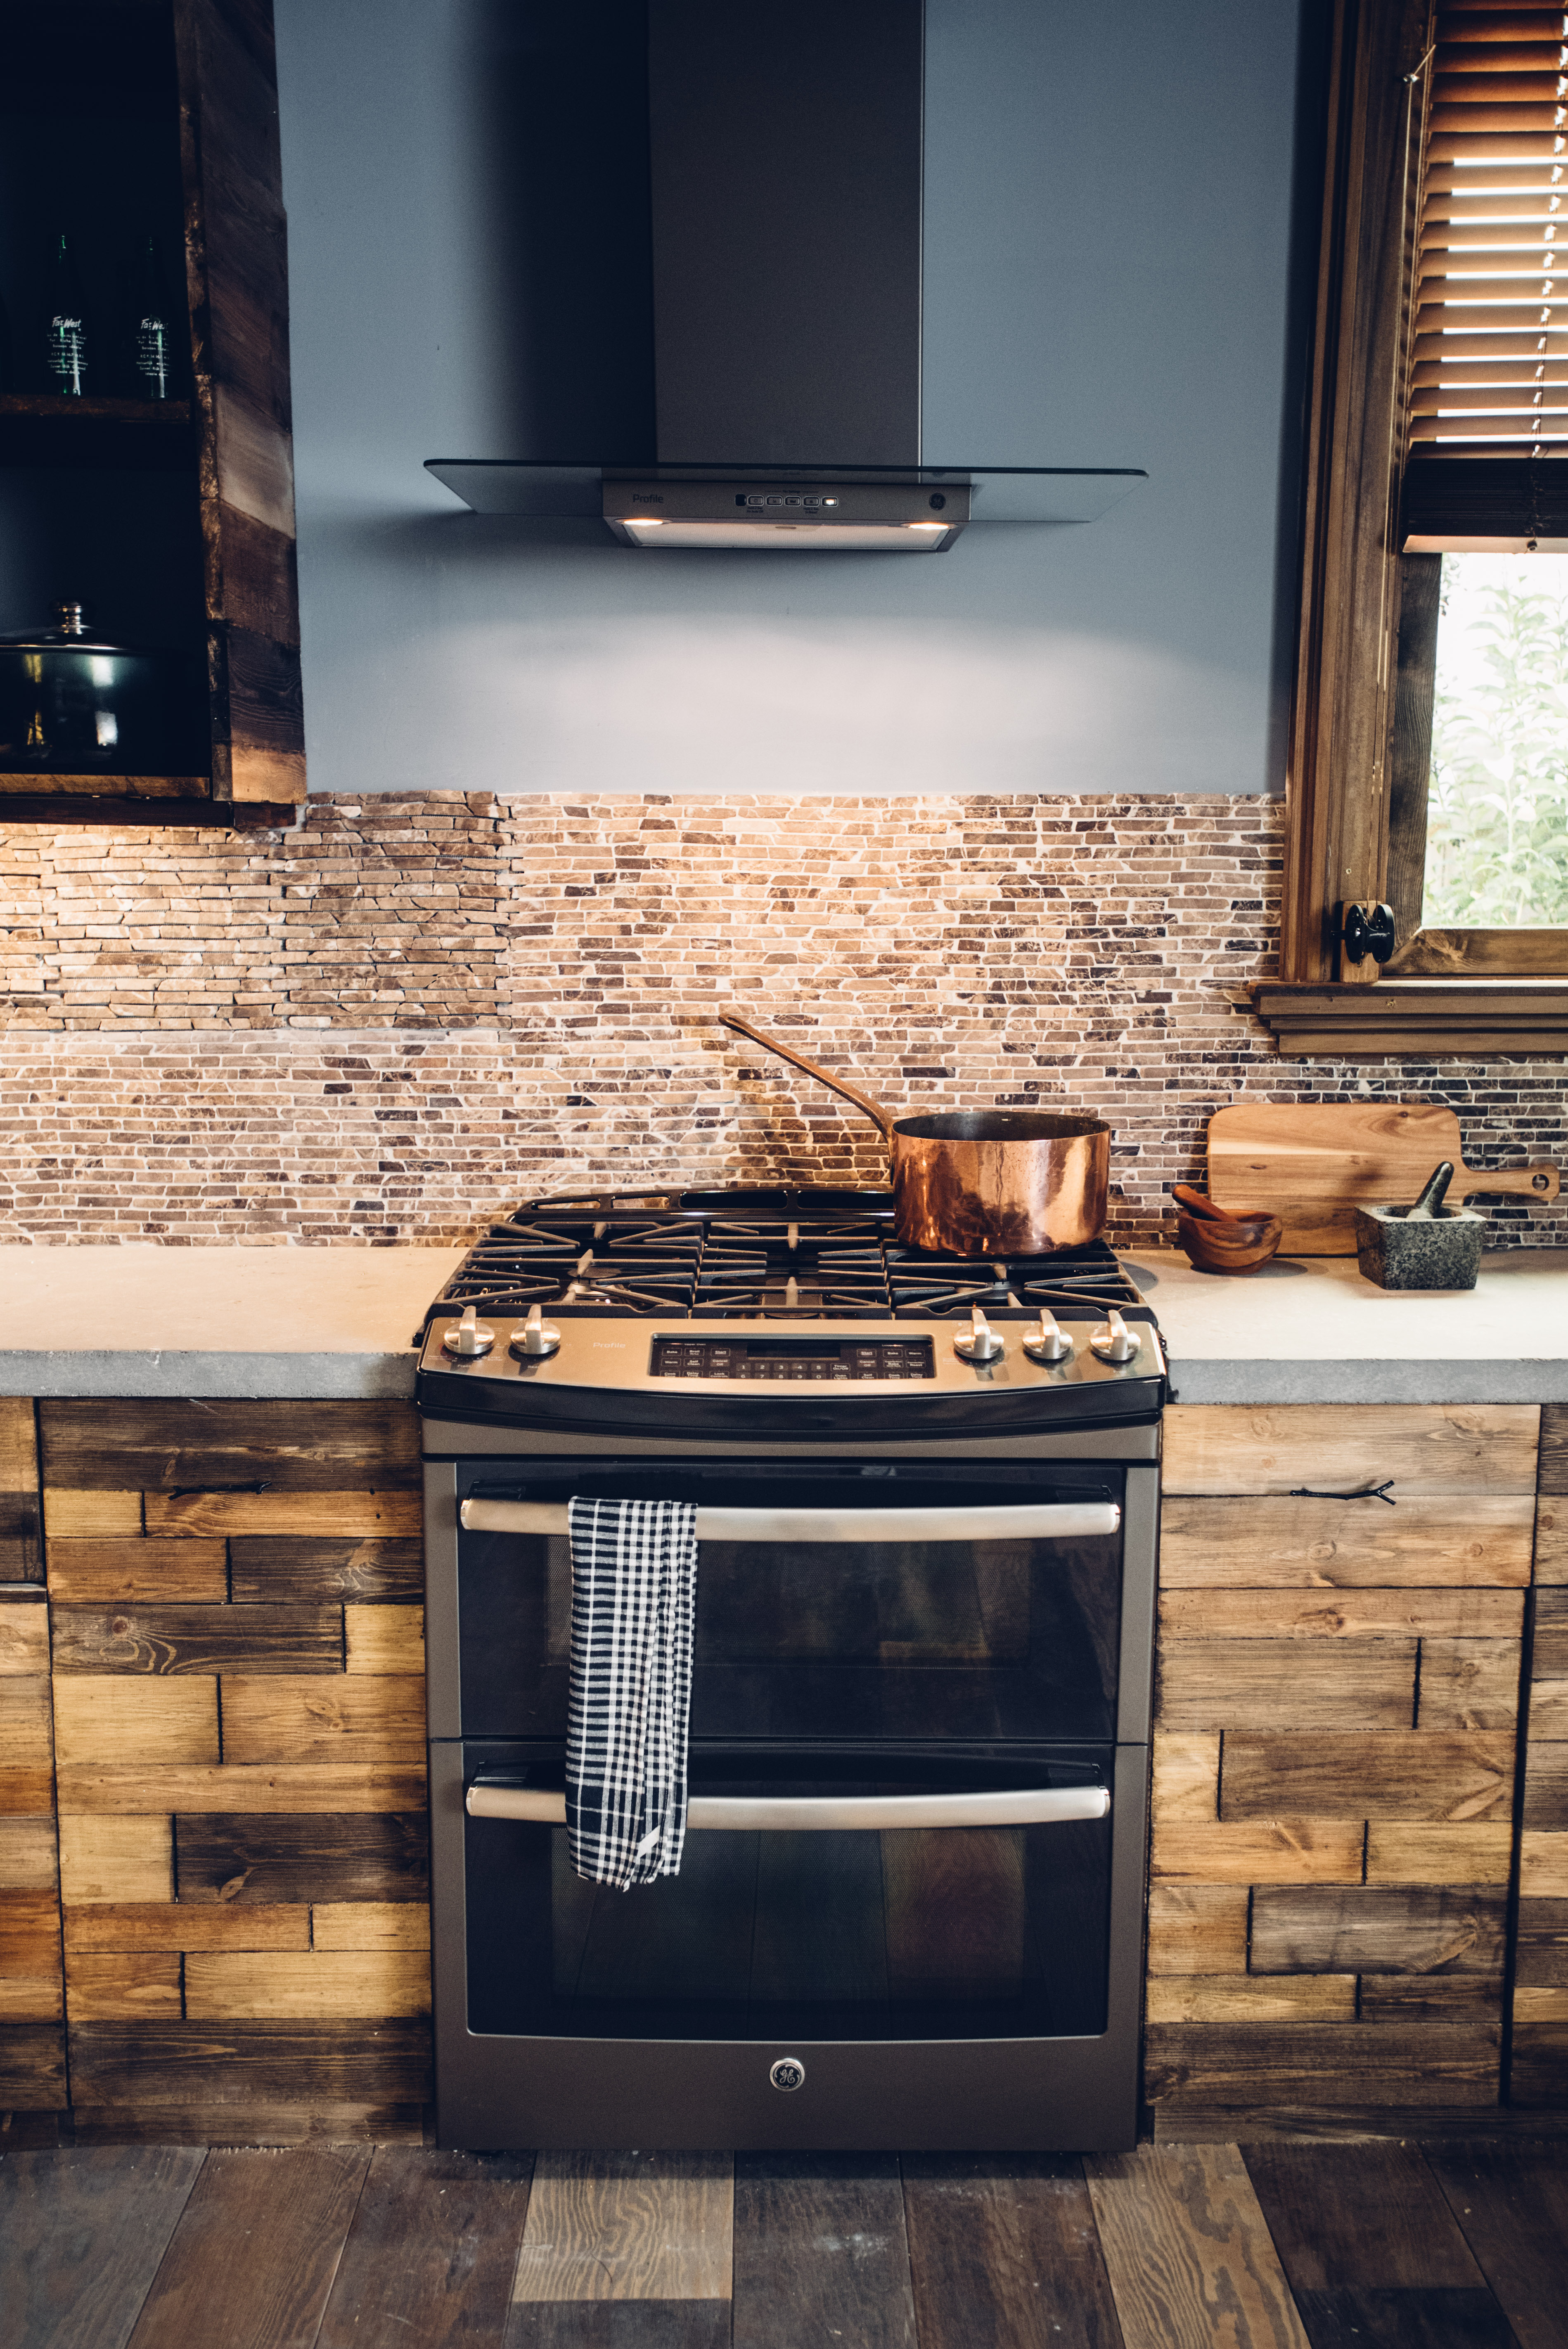 Slate A Warm Take On Stainless Steel Kitchen Design Blog